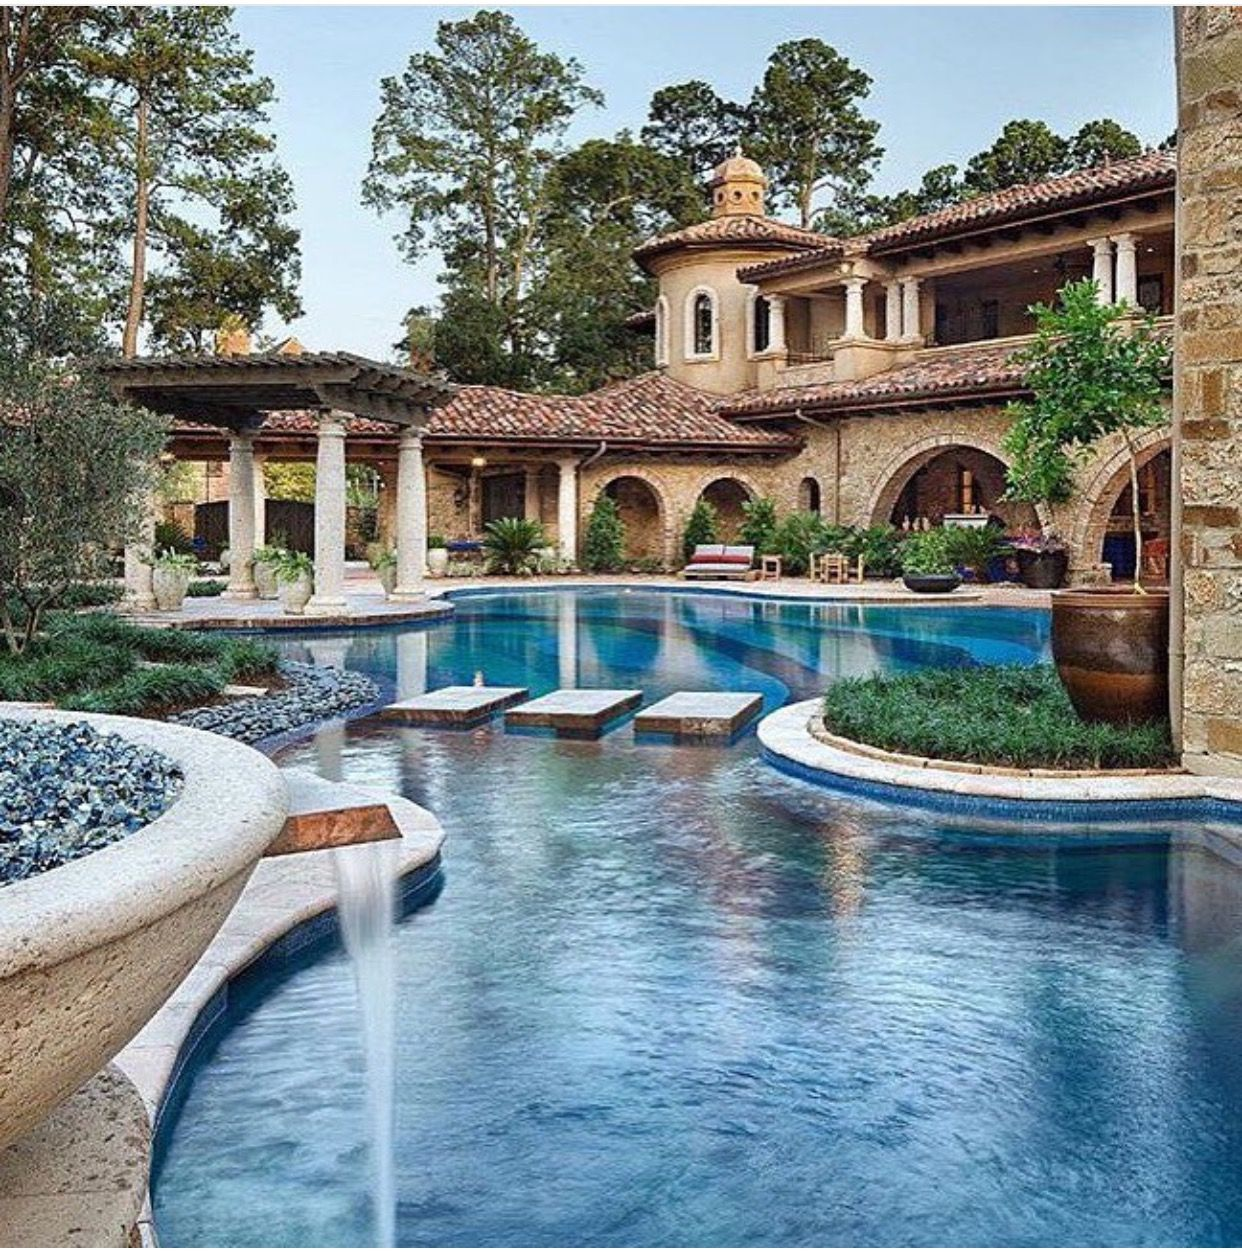 Mediterranean Tuscan Style Home House: Pin By Doris Diaz On Luxurious Outdoor Living